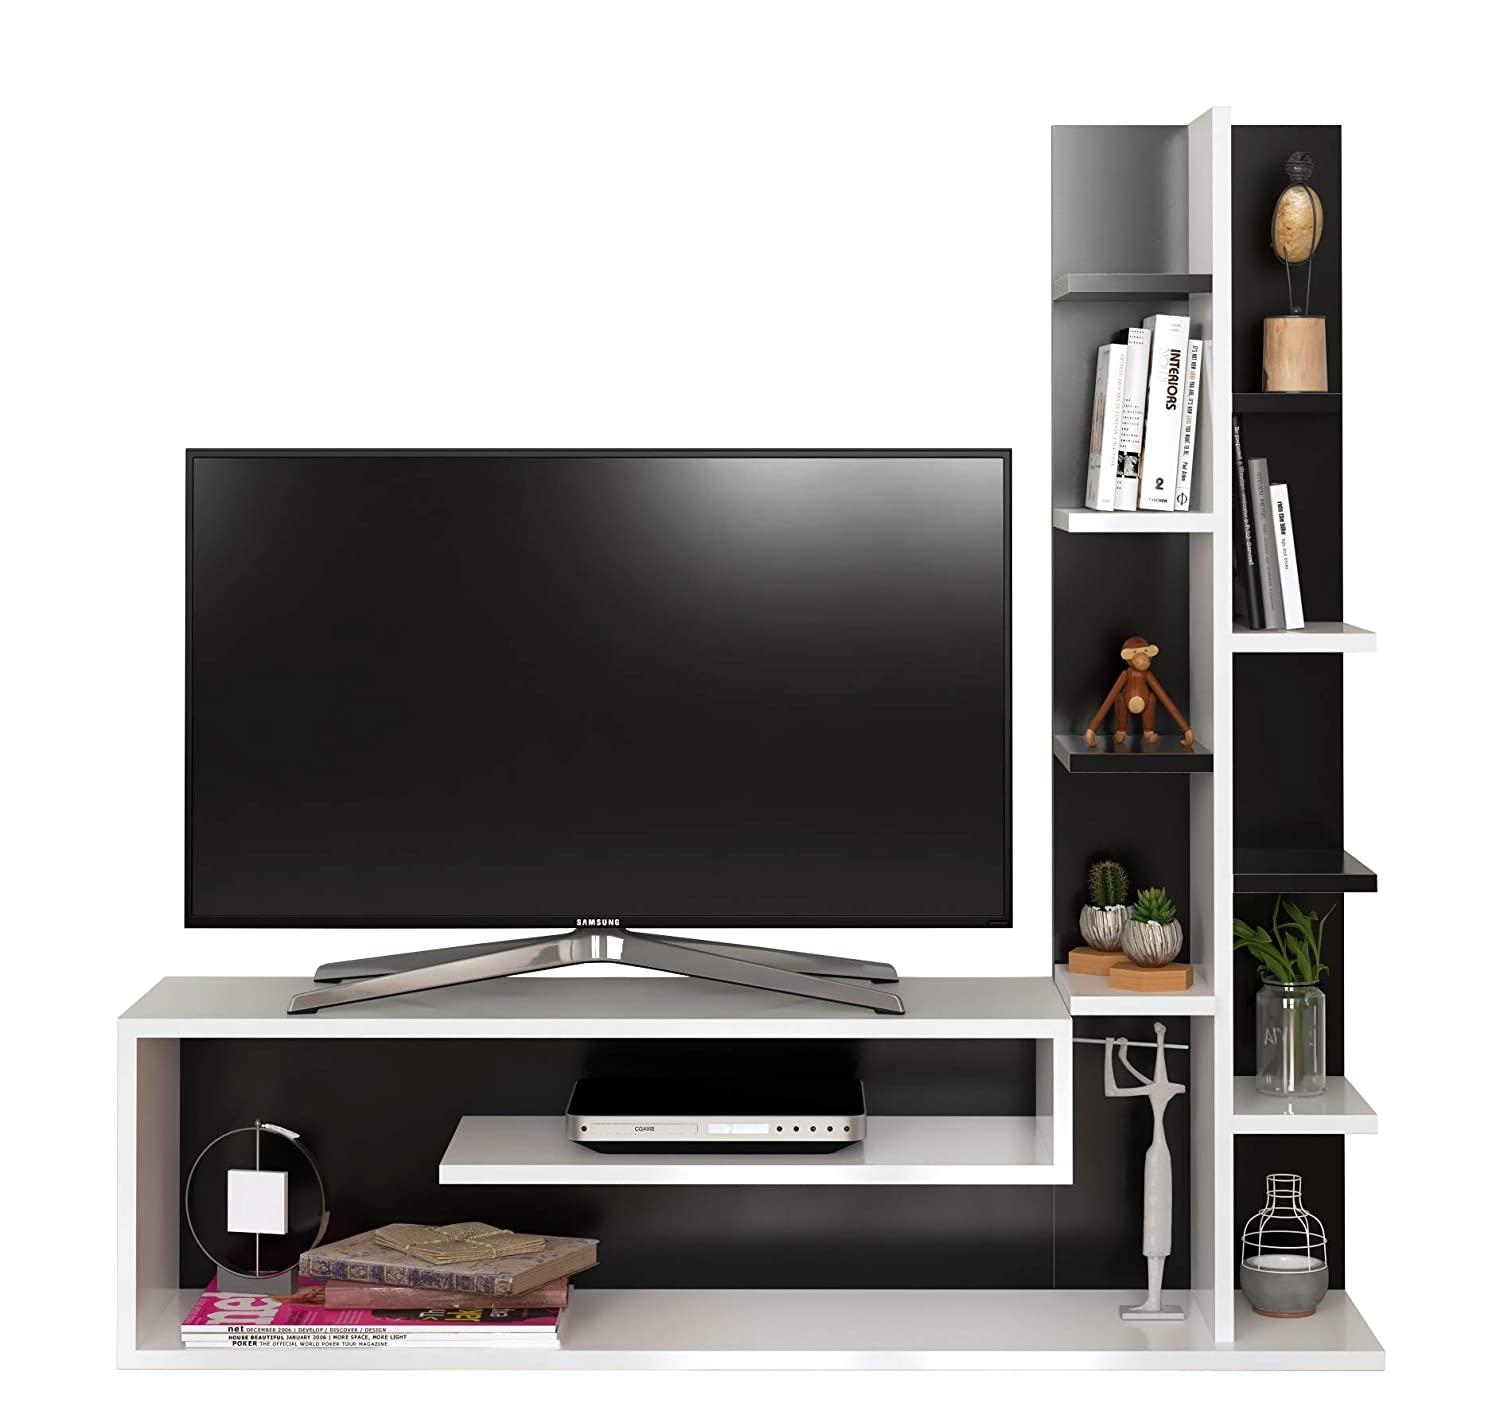 GLORY Wall Unit - White / Avola - Living room set / TV Lowboard / TV Stand with shelving unit in stylish design Homidea